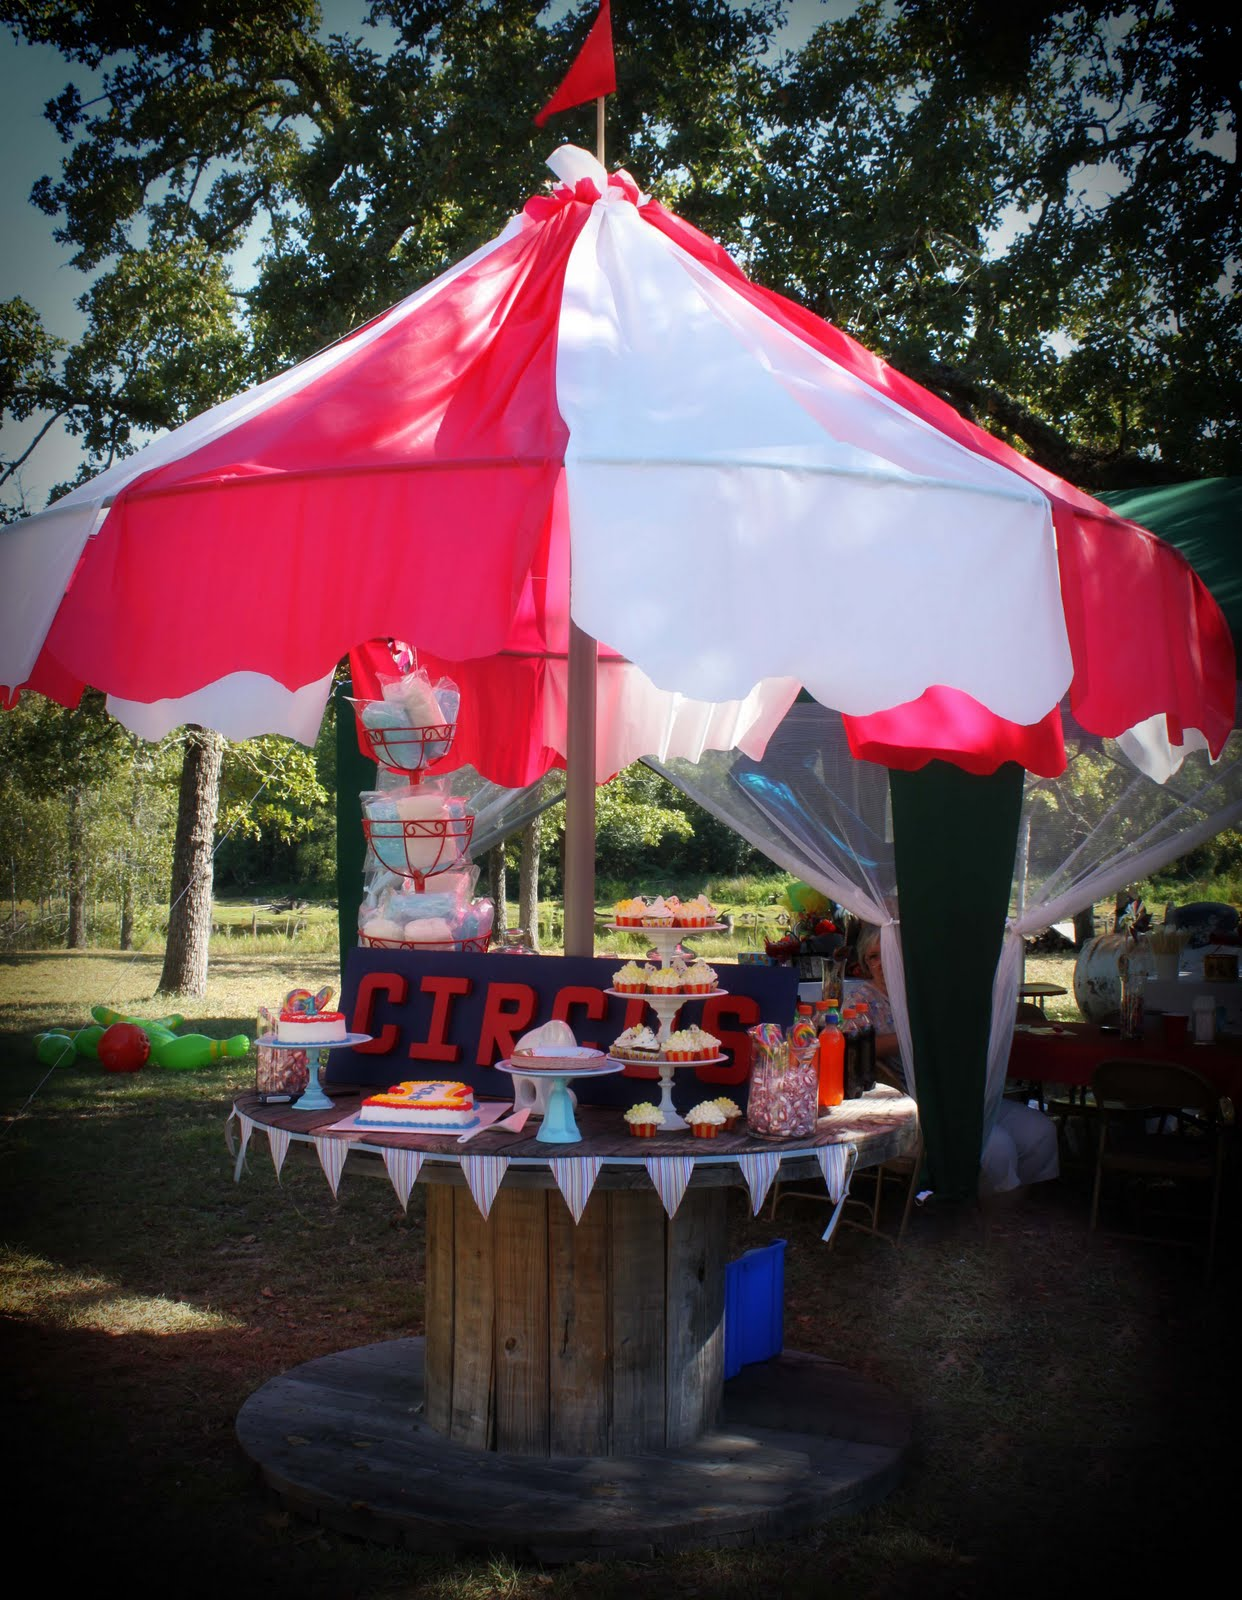 How To Make A Tent Diy Carnival Party Big Top Tent Southern Revivals